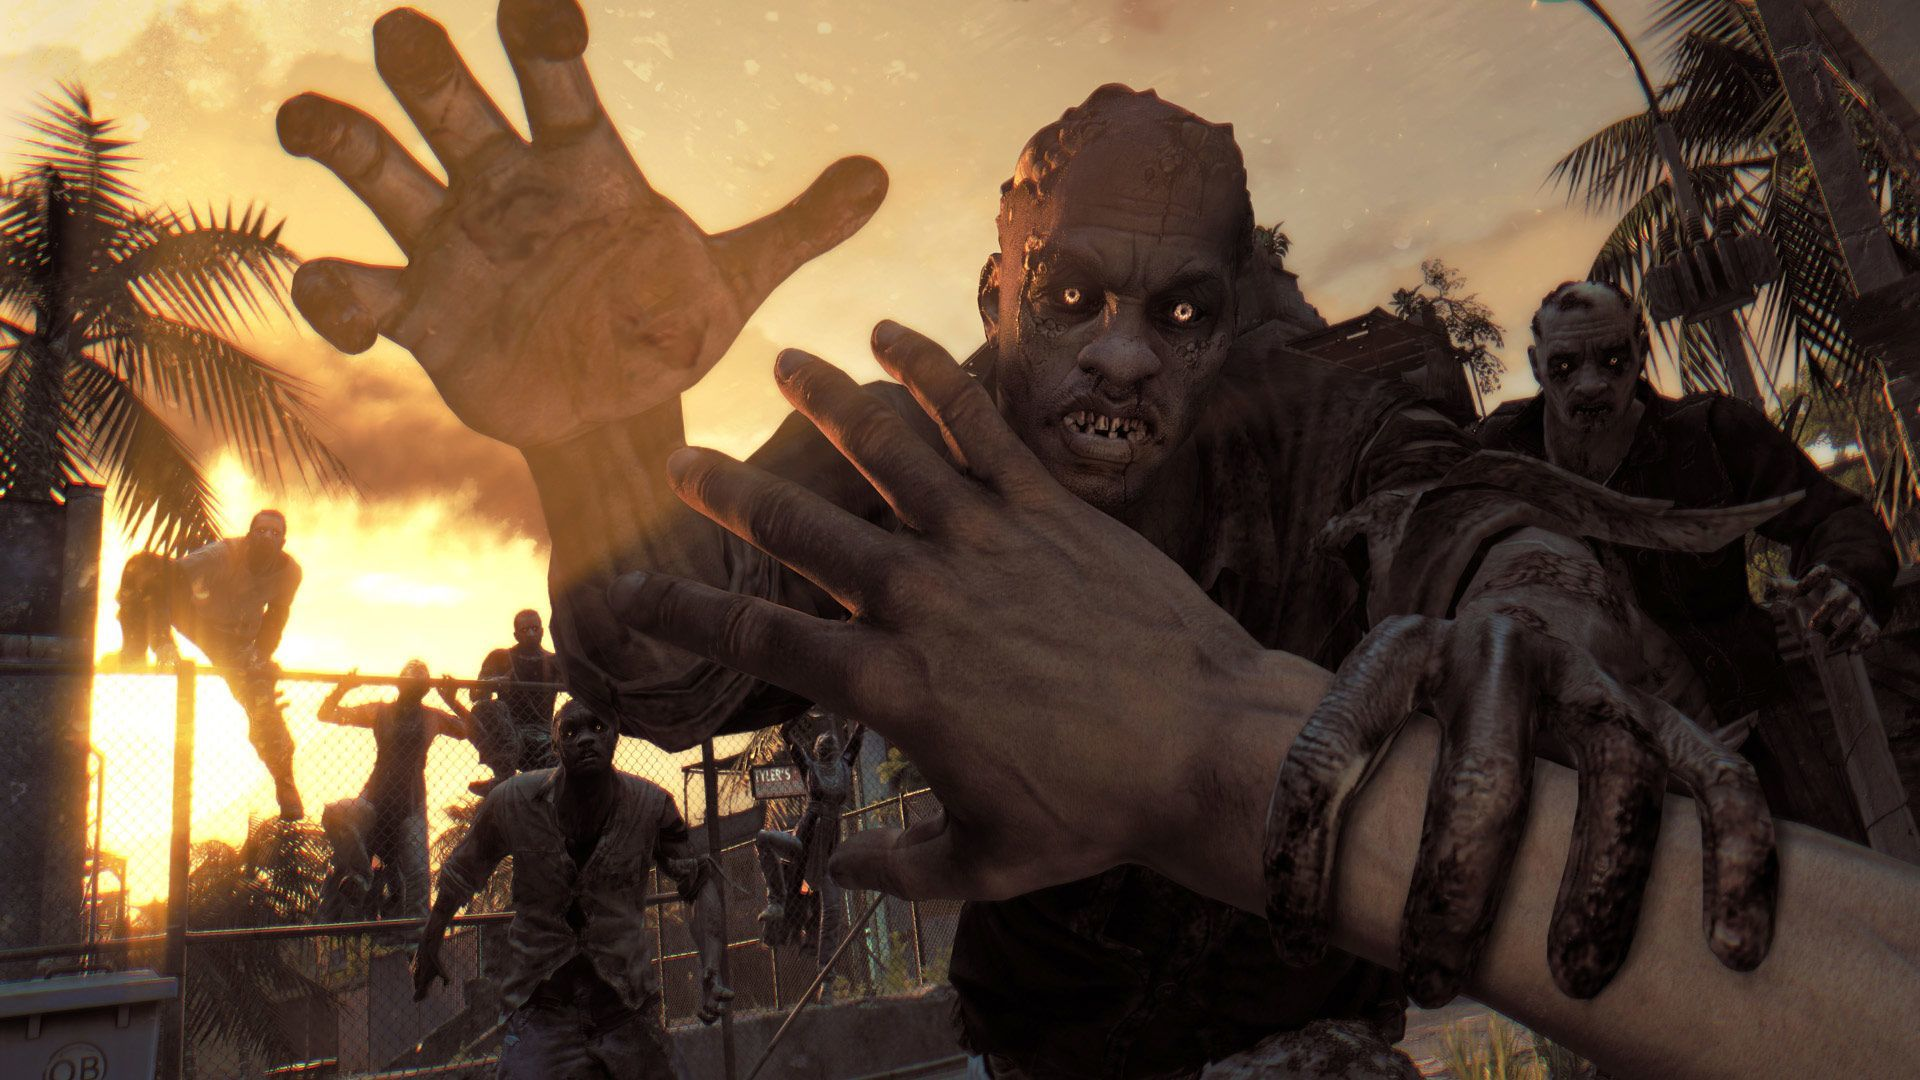 Dying Light - VGProfessional Review (4)